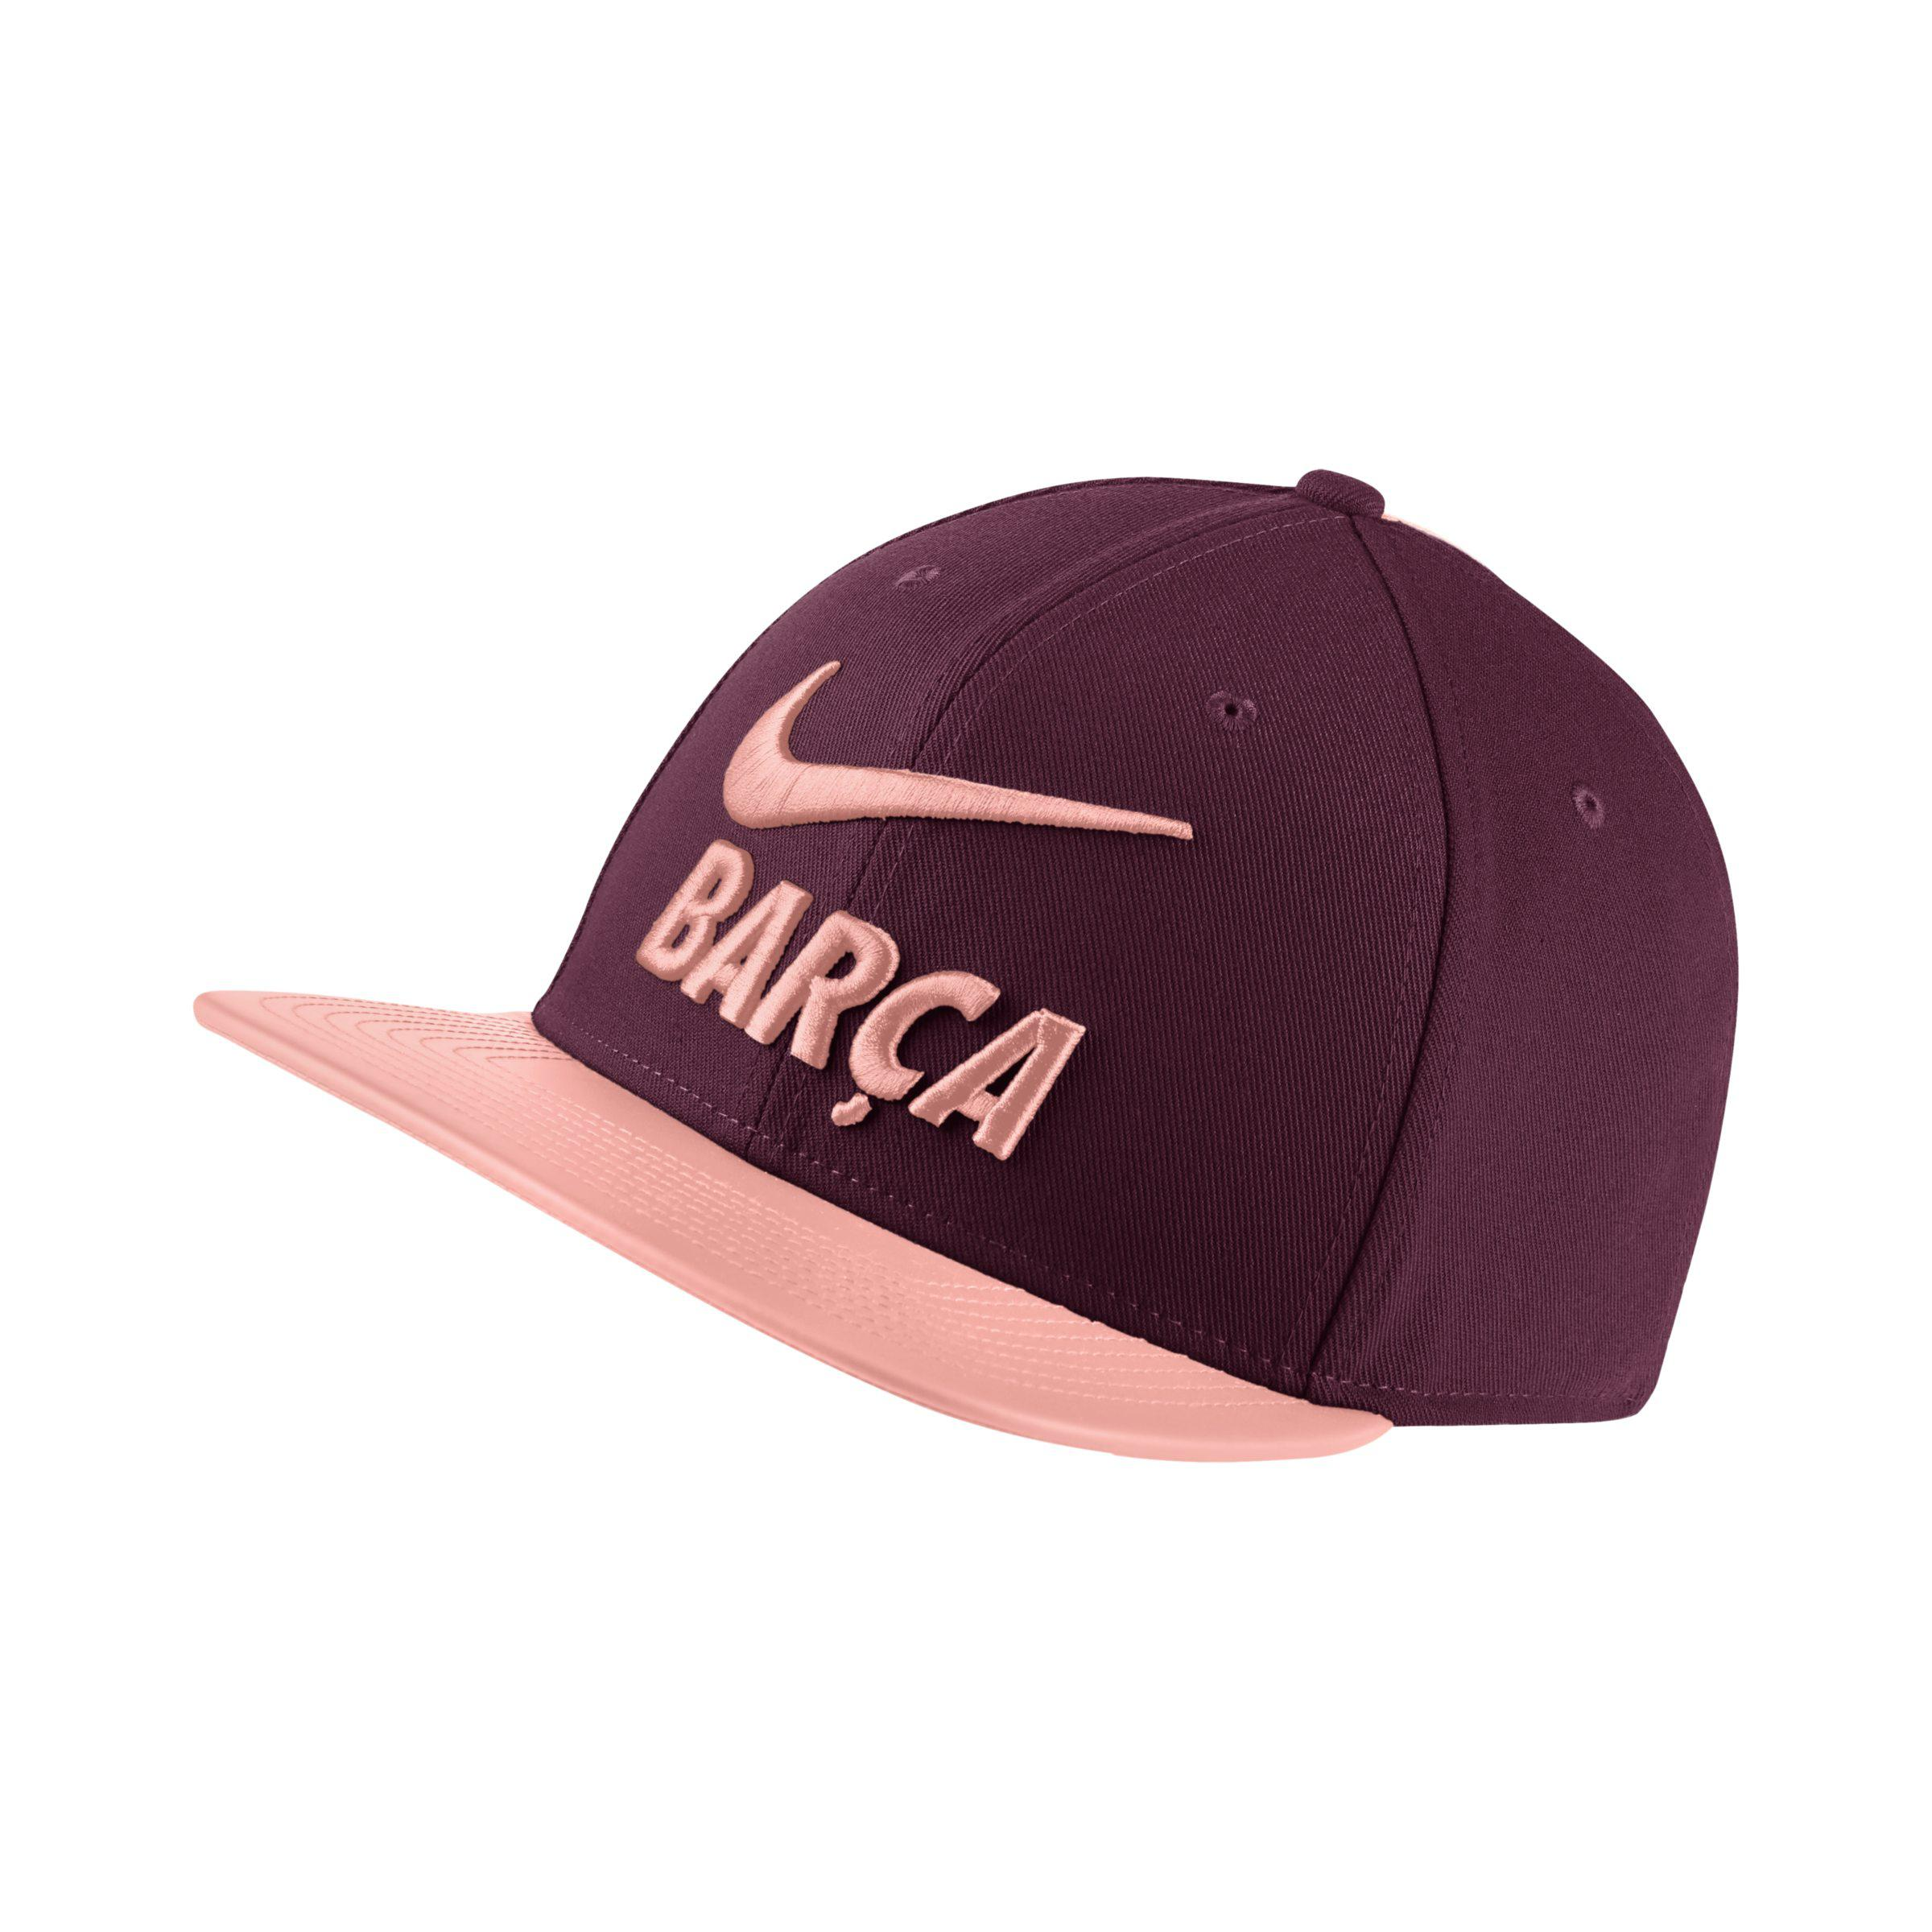 38d20dad9452db Nike Fc Barcelona Adjustable Hat in Red - Lyst